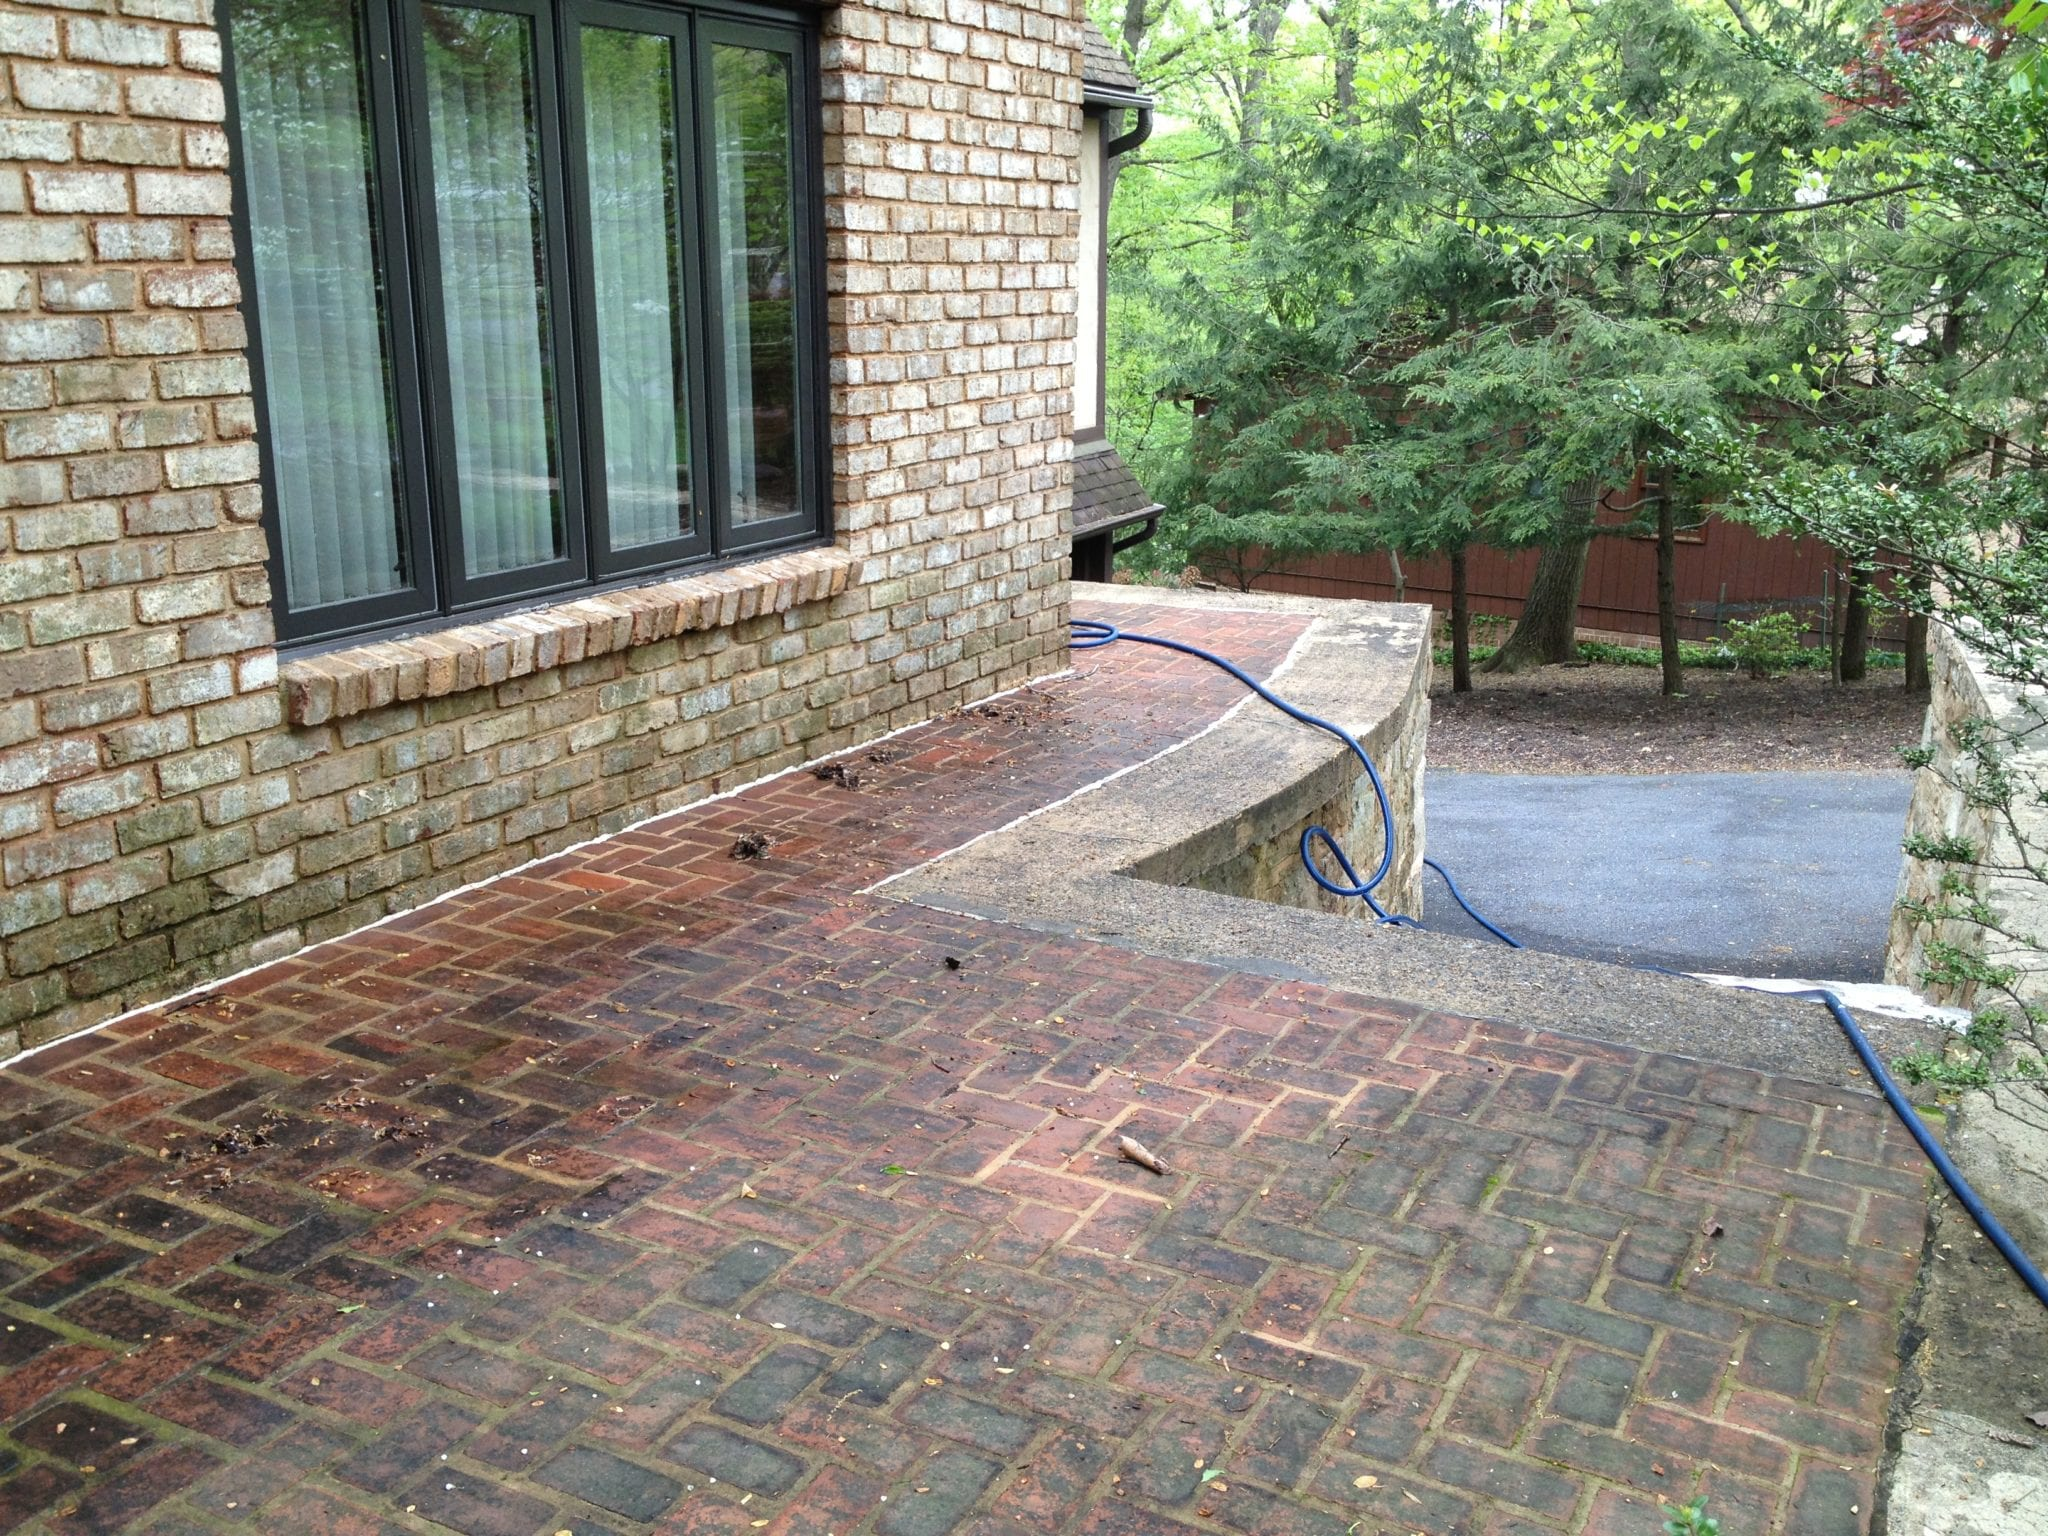 Cleaning Dryvit Exterior : Pressure washing exterior cleaning services lebanon pa